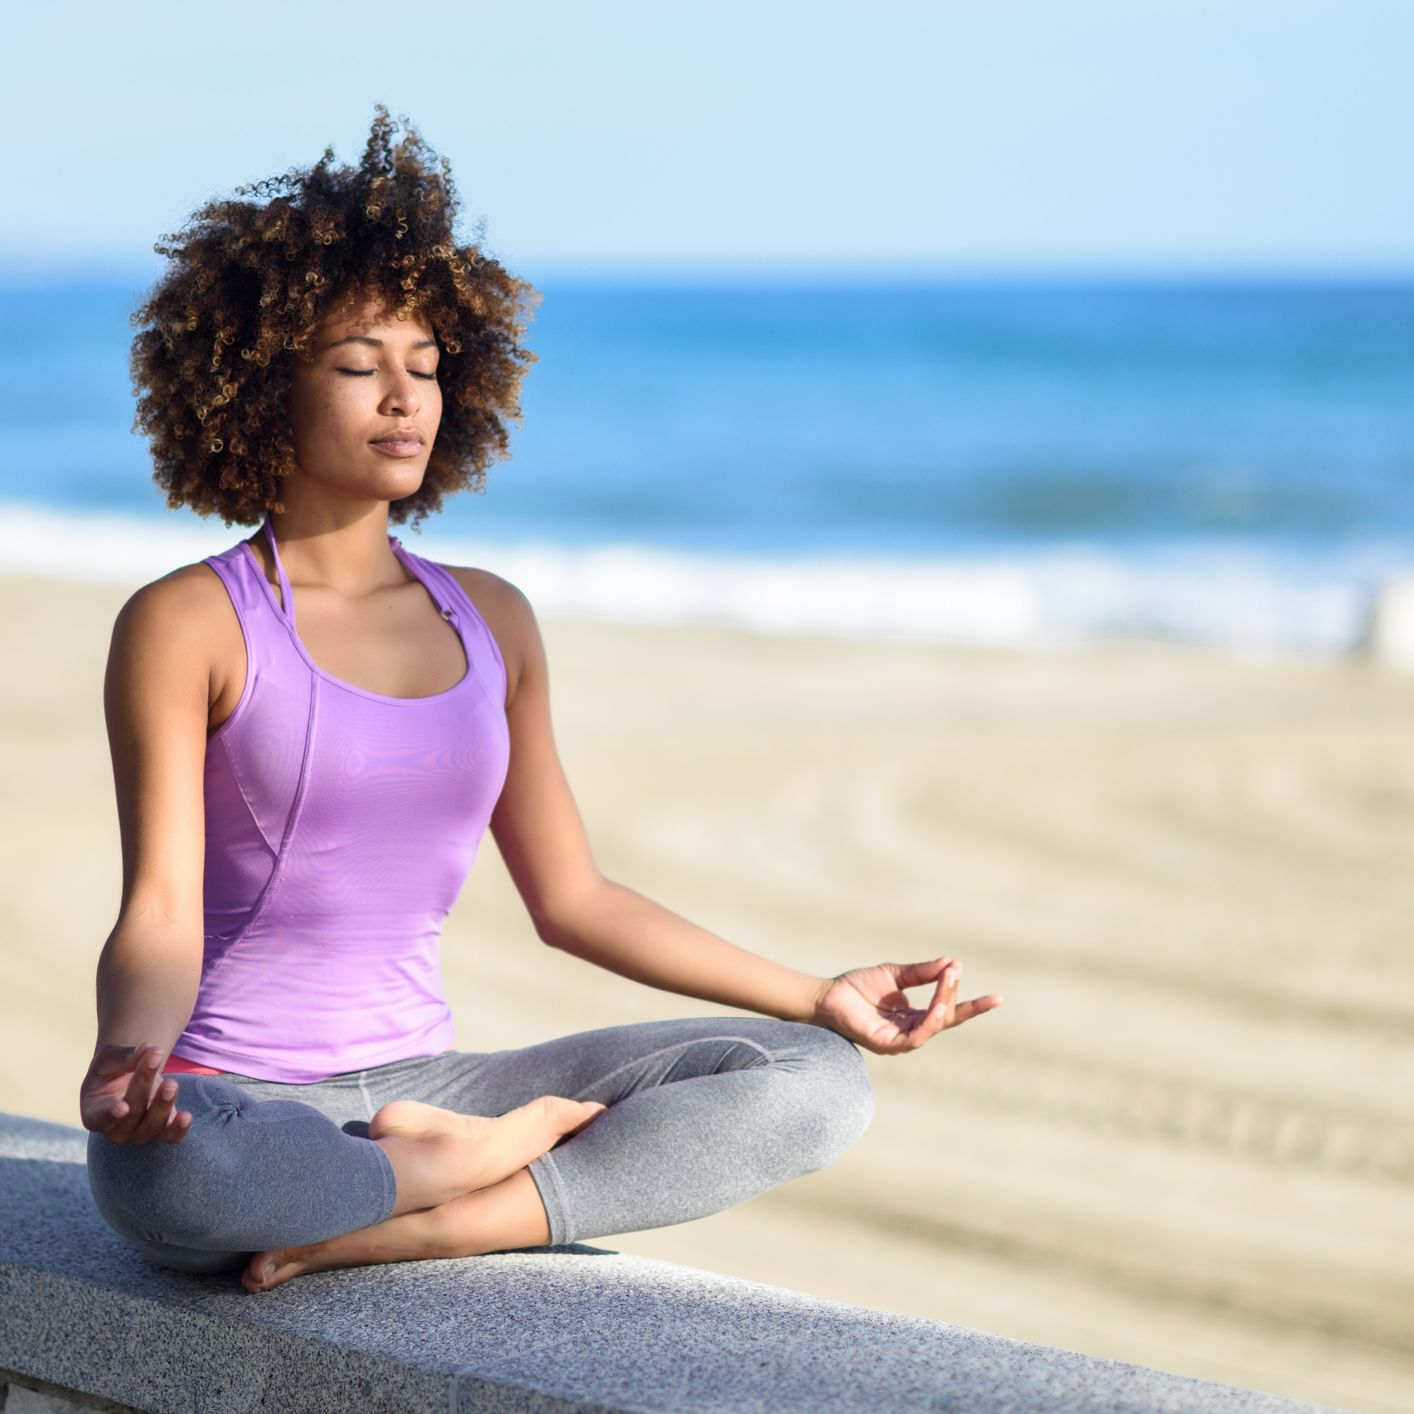 Importance of tranquility-improves the ability to meditate